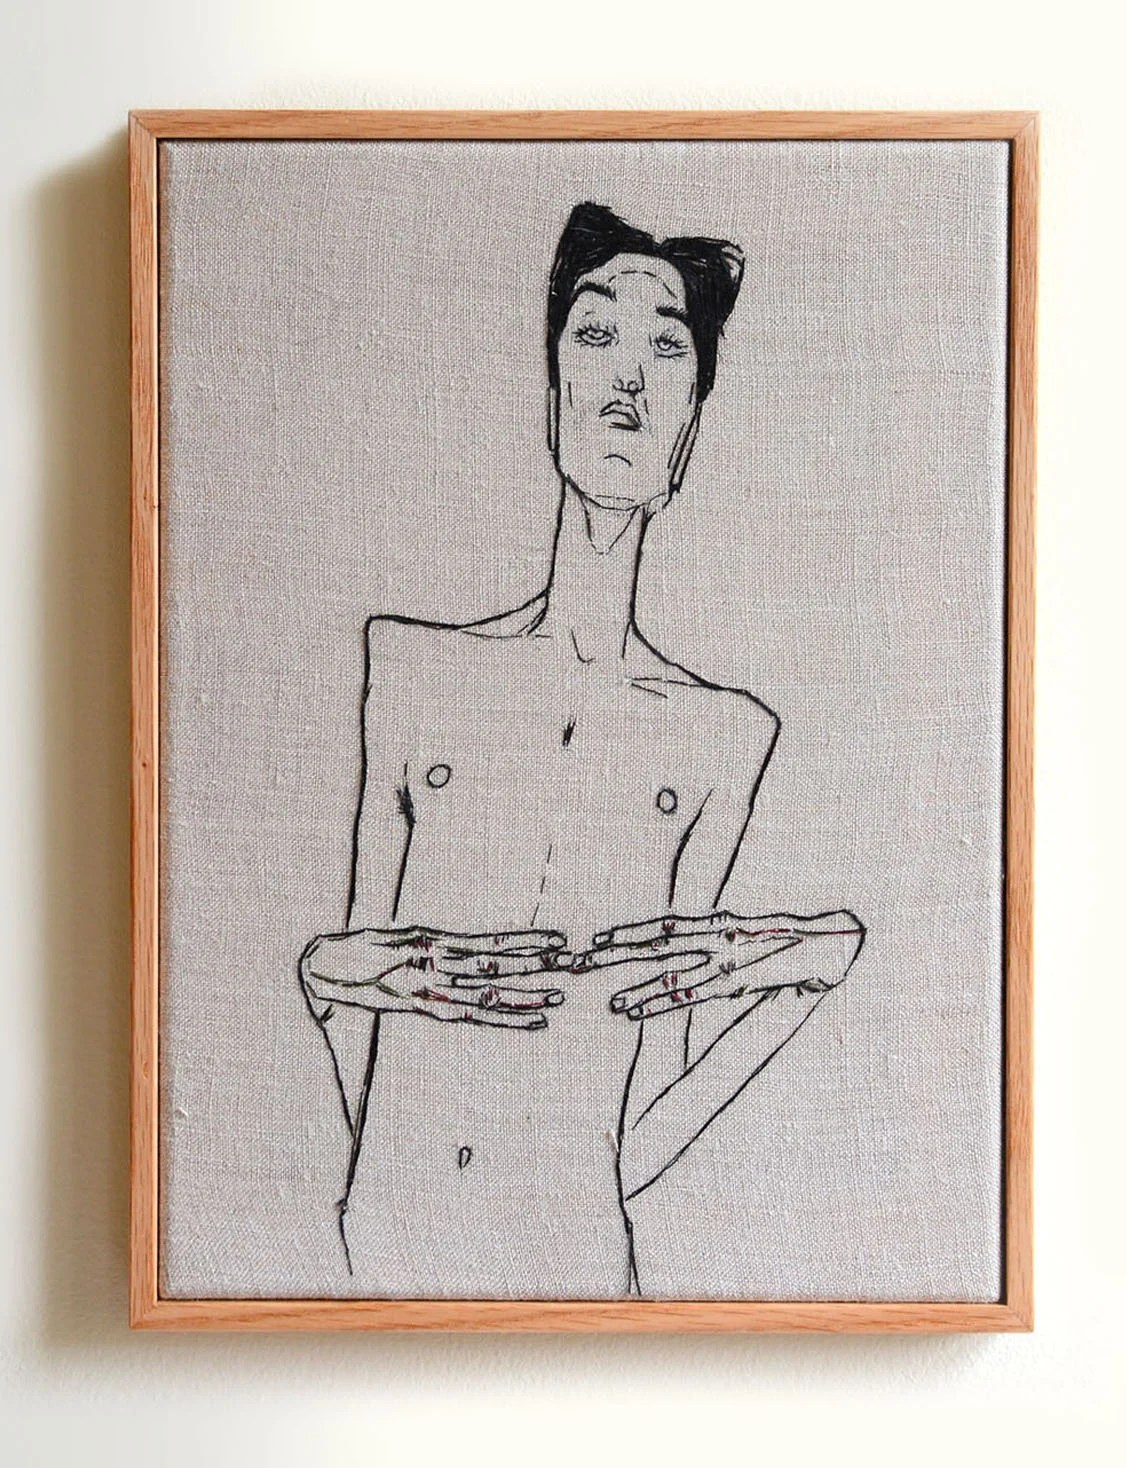 Egon Schiele Libro Egon Schiele Male Hand Embroidered Art Framed With Wooden Frame In Stock